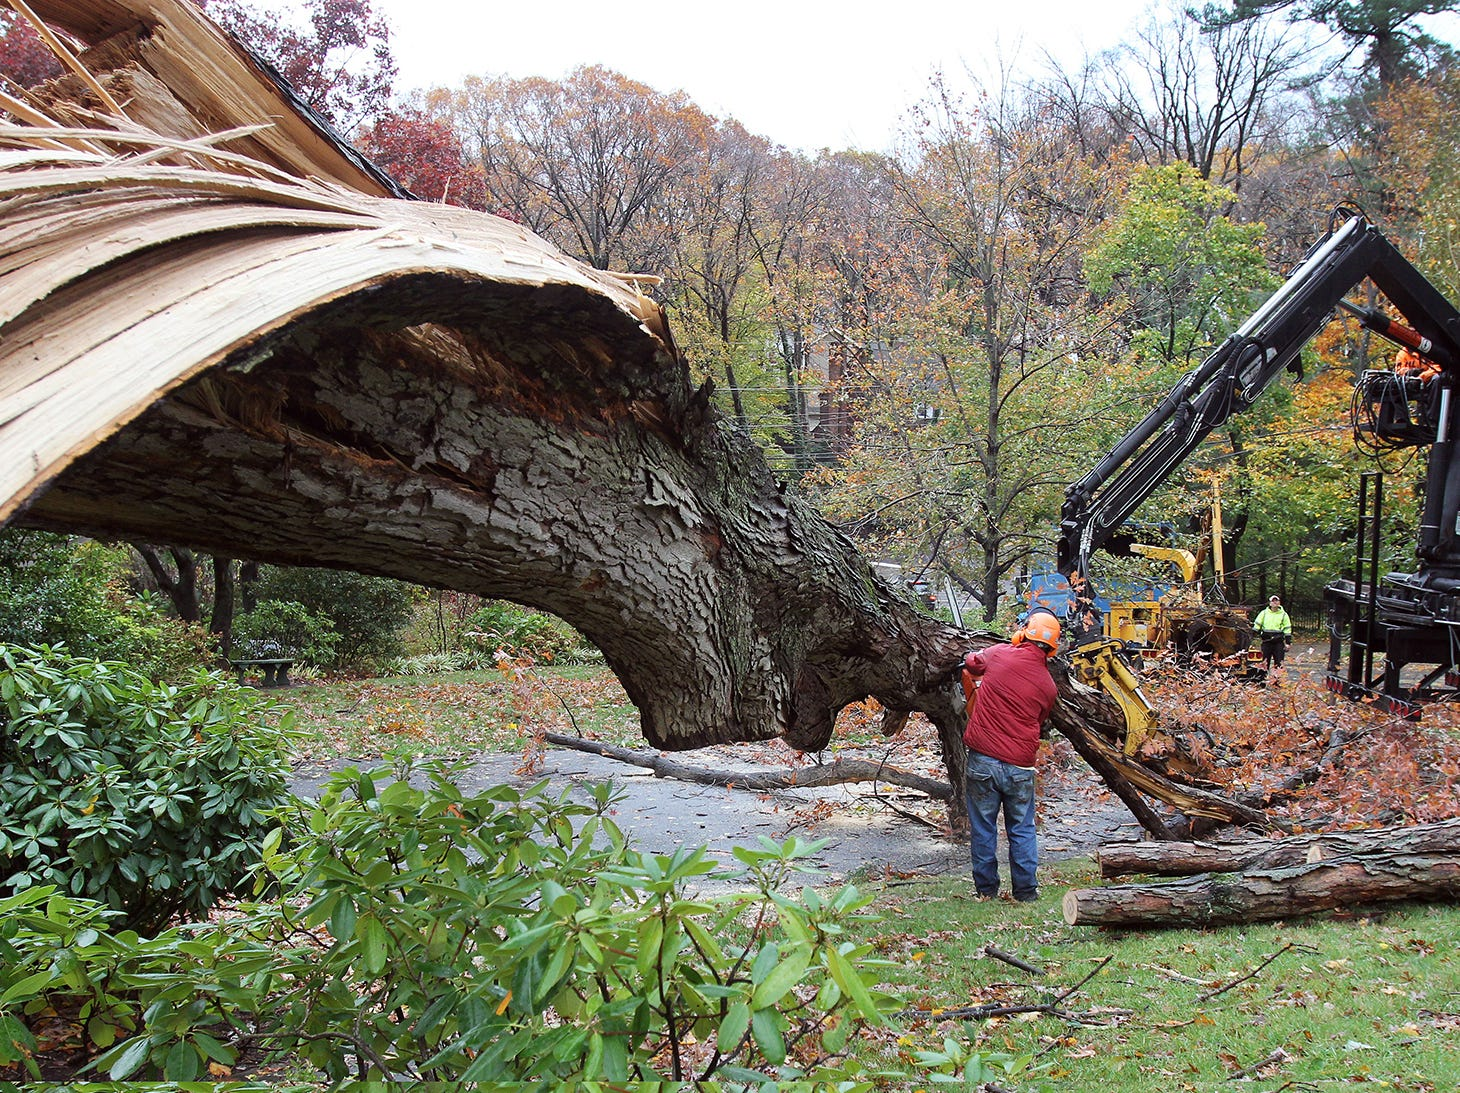 A worker from Dave's Tree Service cuts a fallen tree in Ridgewood following Hurricane Sandy in New Jersey.